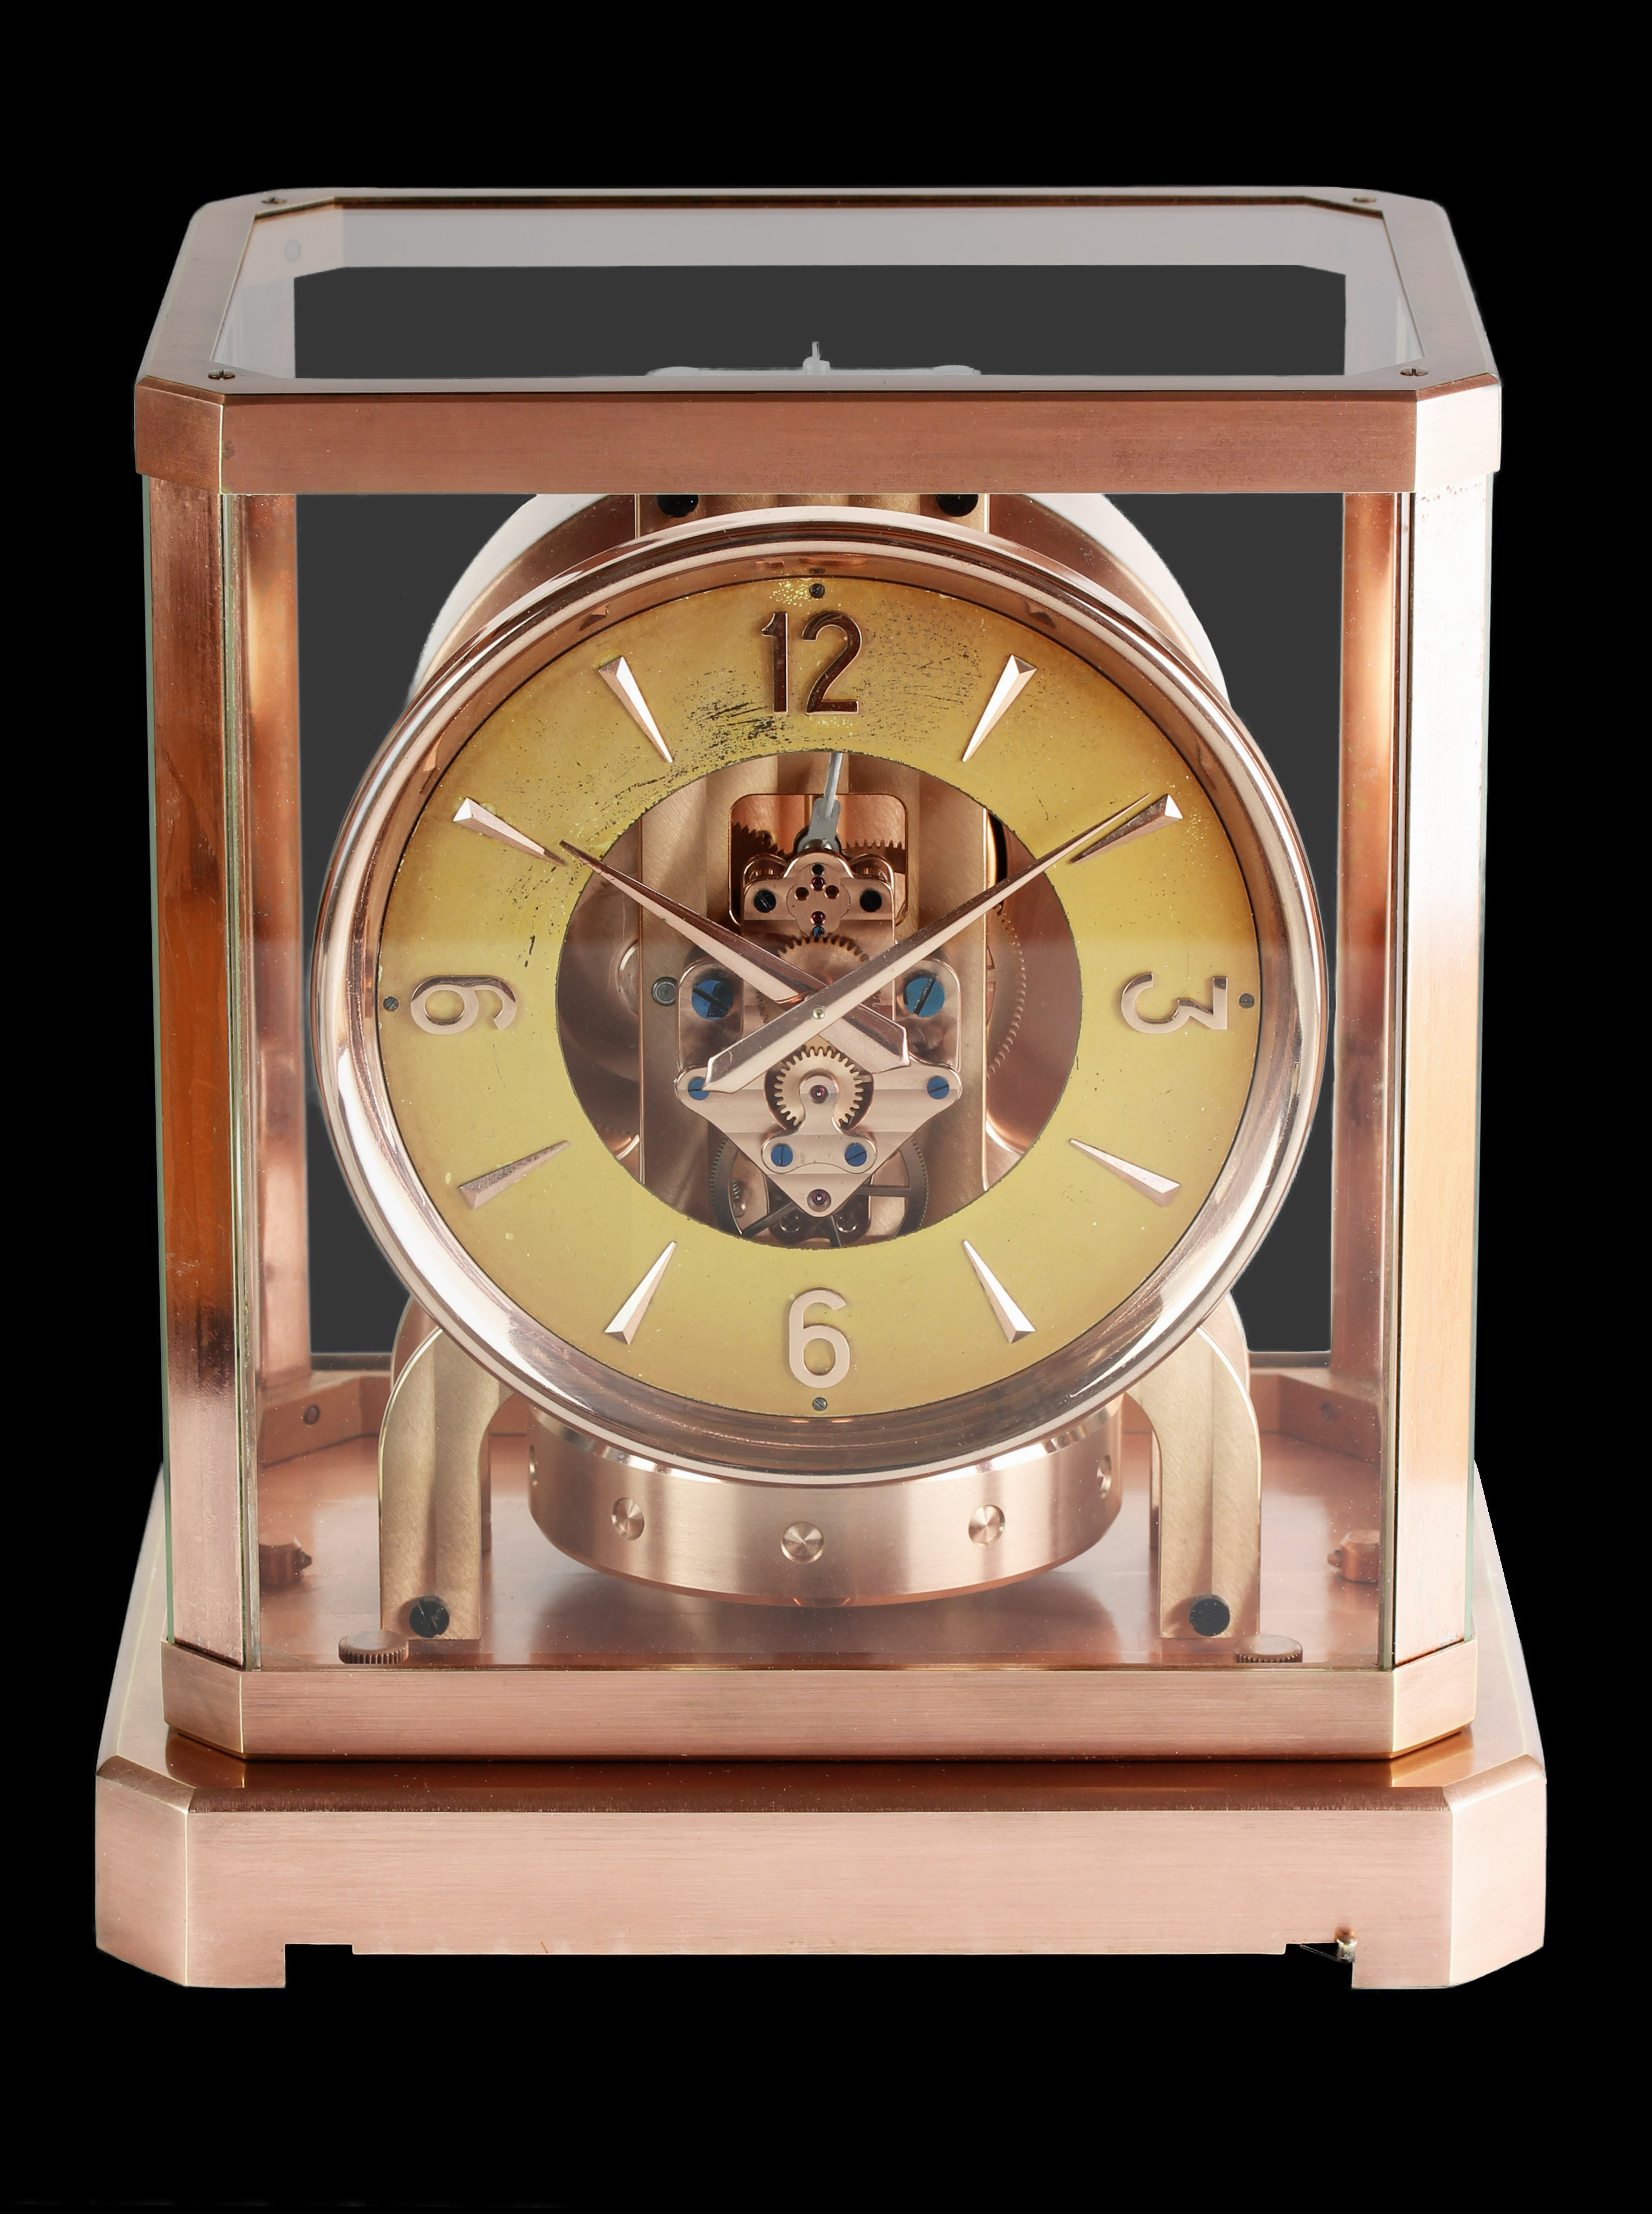 Jaeger LeCoultre ATMOS III from the early 50' ies in a rare copper case